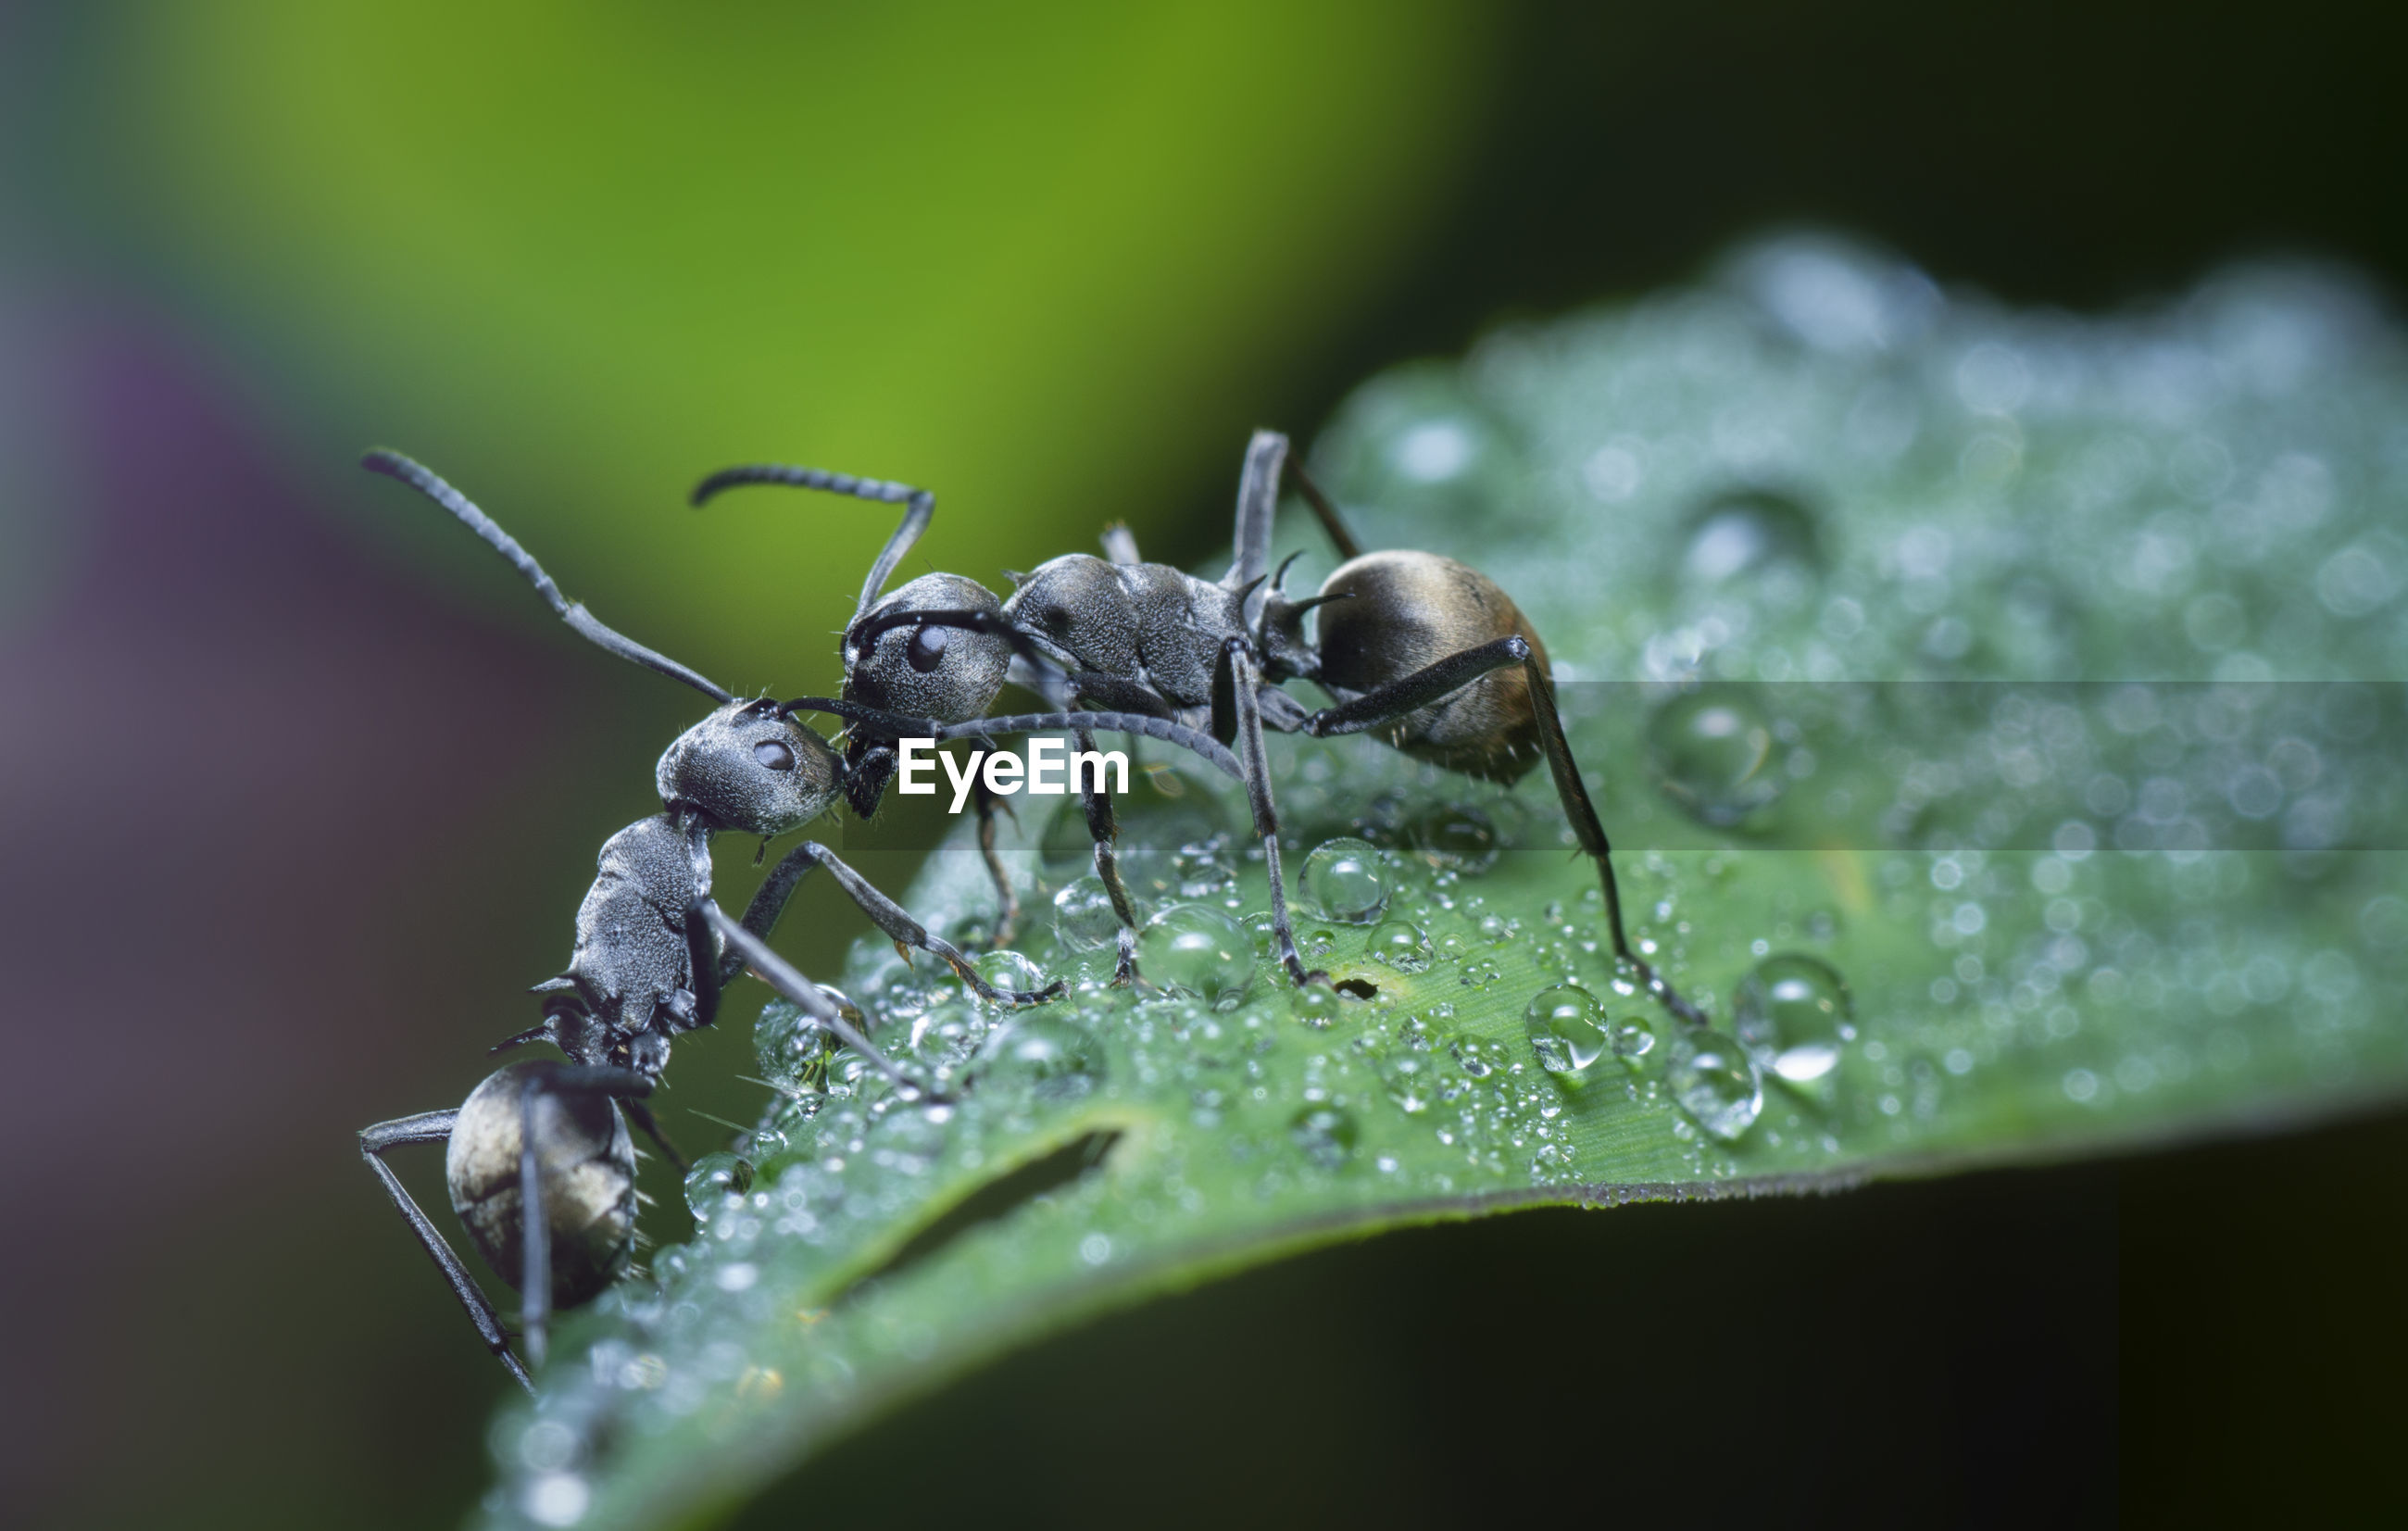 Polyrhachis dives ants